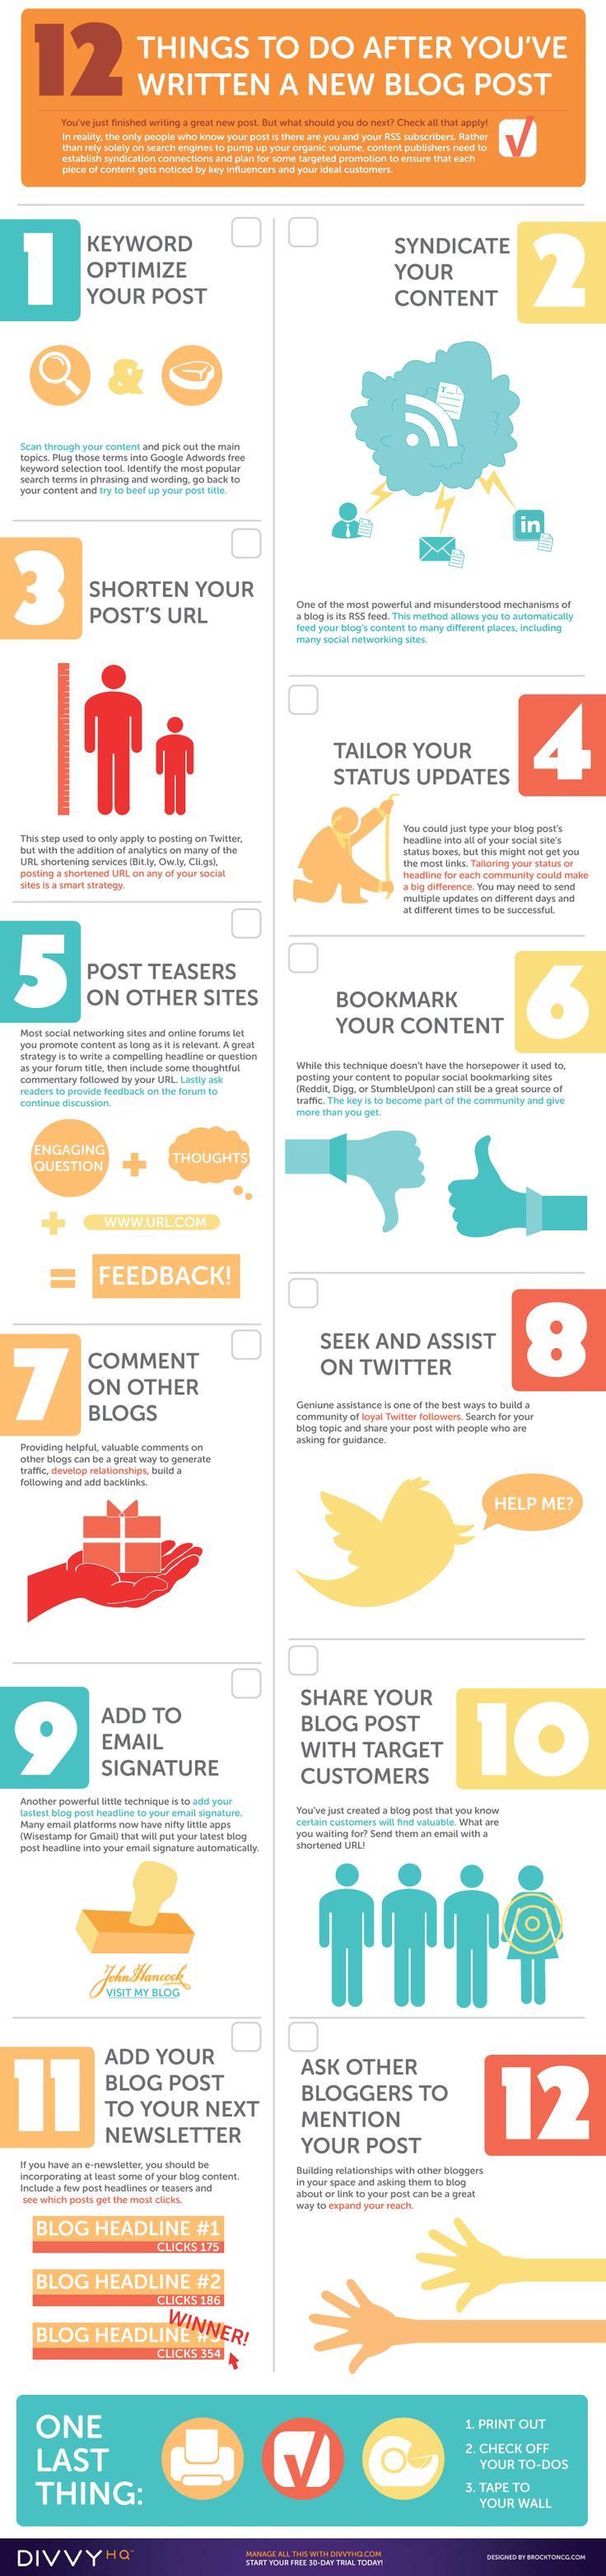 12 do's after your next blog post! #infographic #socialmedia